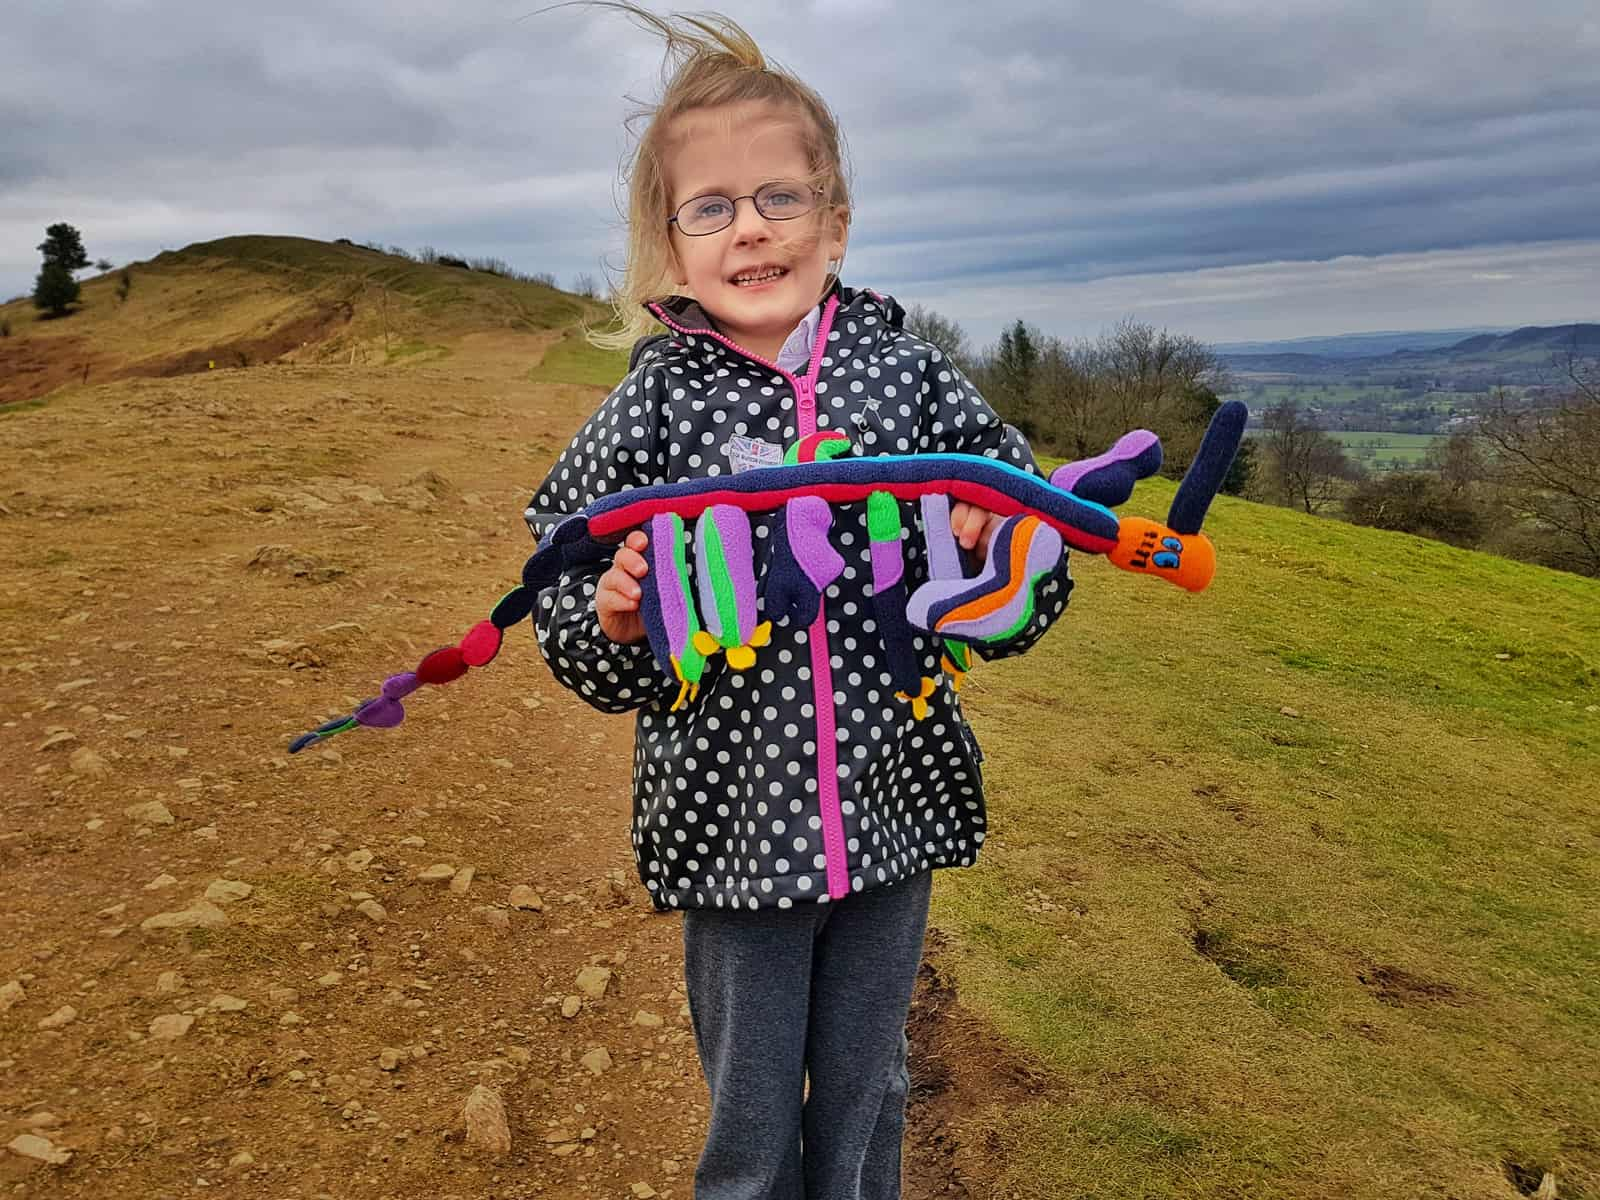 5 year old girl in black and white spotty coat on Malvern hills holding a cuddly toy long in shape with a red face and four legs with a long tail and bits sticking up. Girl looks pleased.